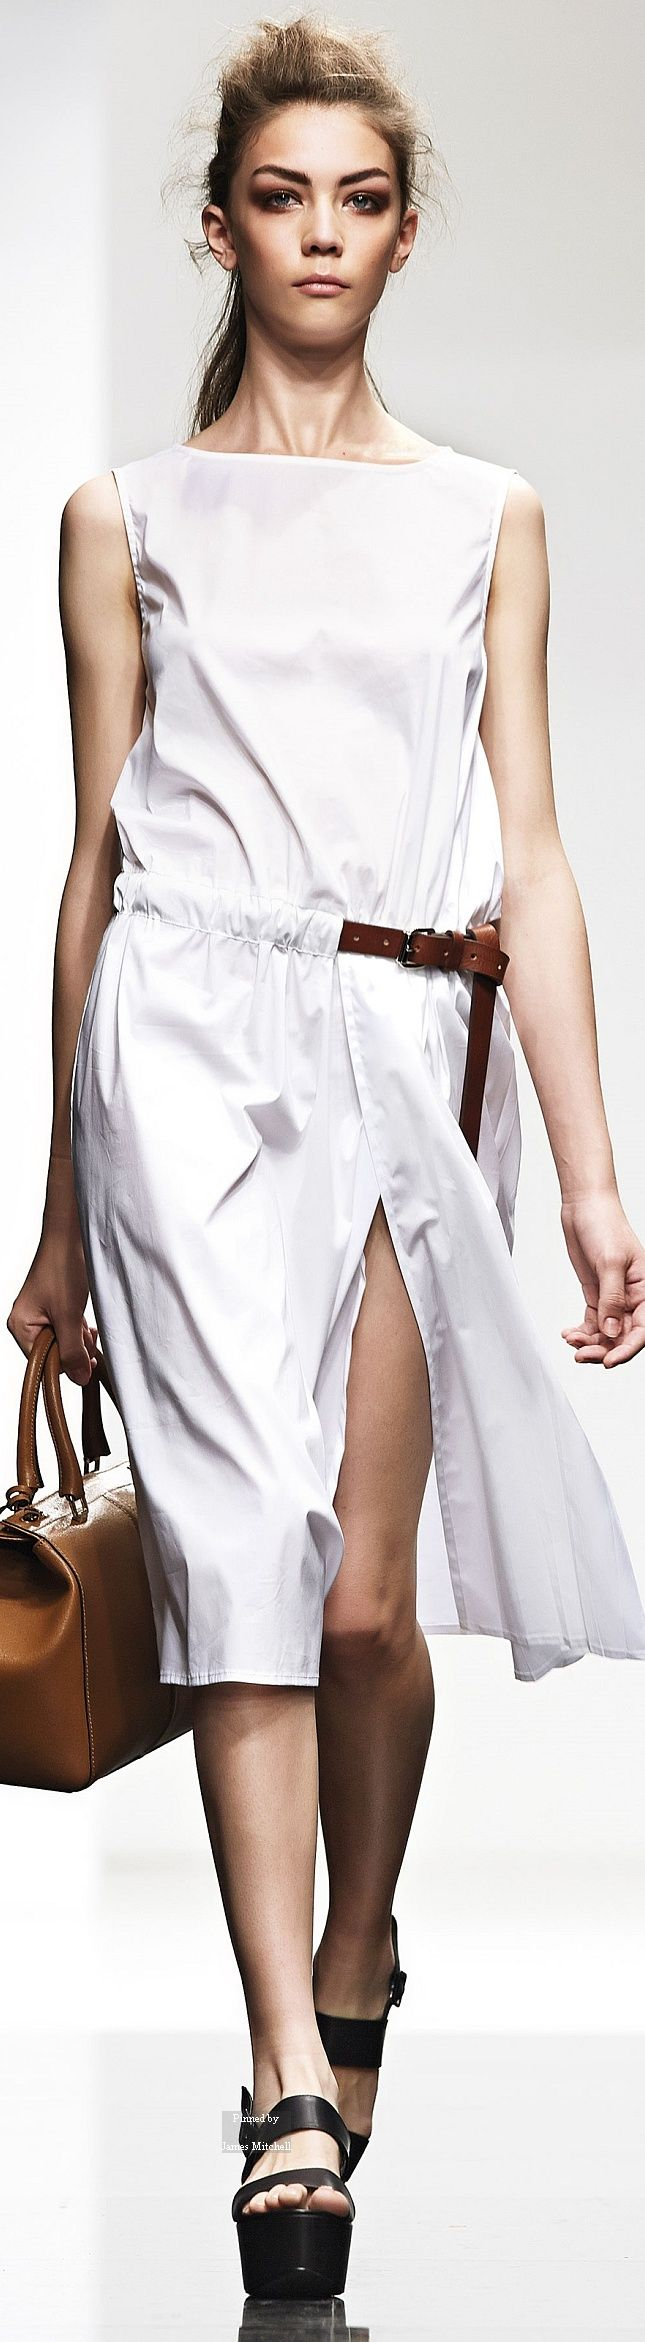 Liviana Conti Spring Summer 2015 Ready-To-Wear collection women fashion outfit clothing style apparel RORESS closet ideas Clothing, Shoes & Jewelry - Women - women's belts - http://amzn.to/2kG8U55